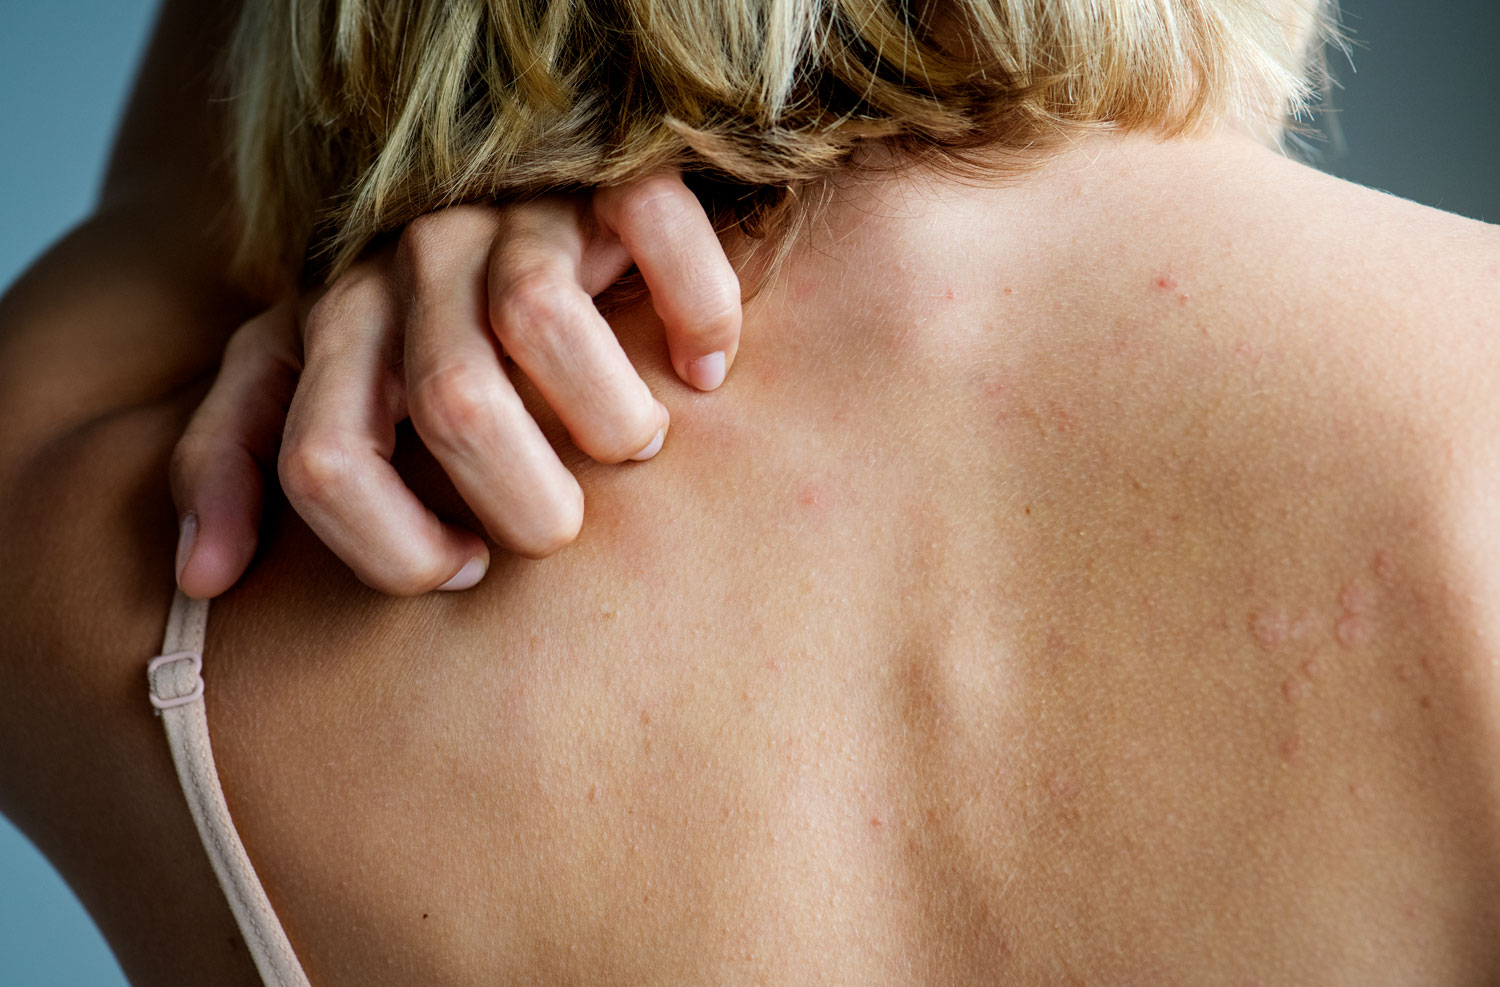 Backside-of-white-woman-back-pain-and-ache-concept-918812934_6587x4333